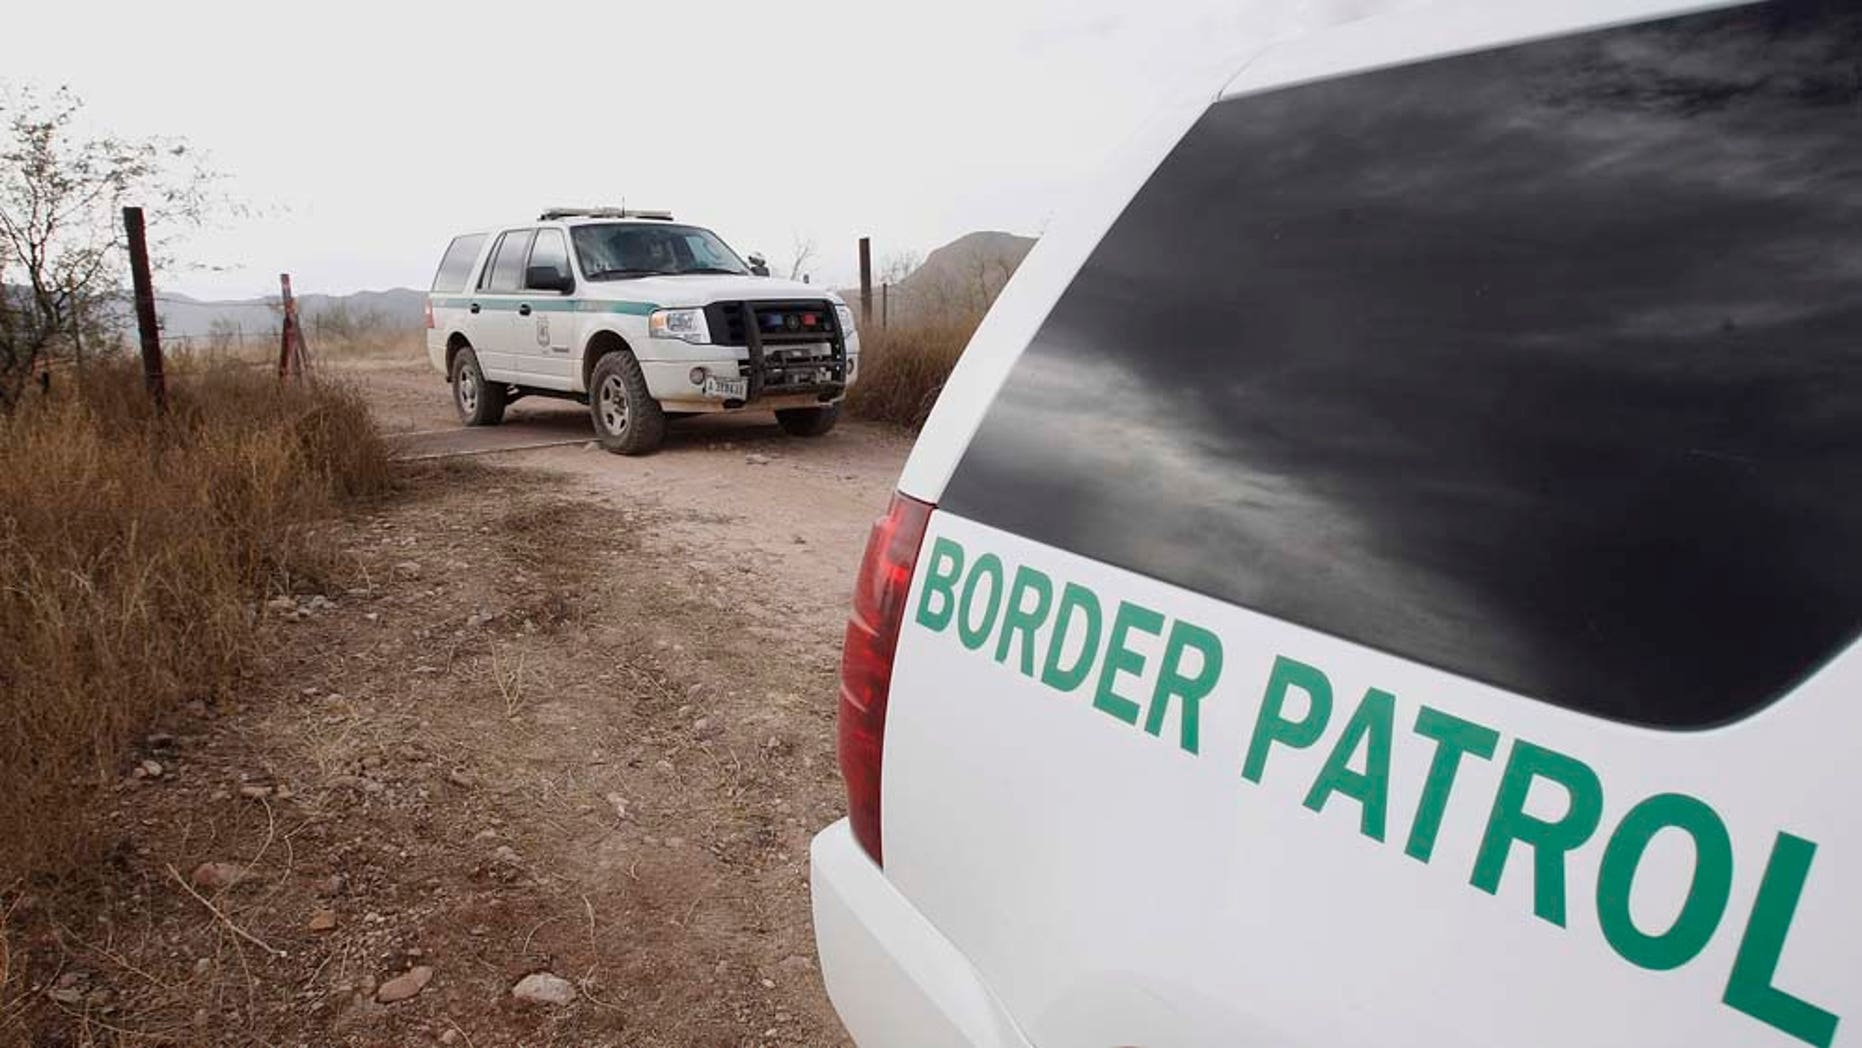 """FILE - In this Thursday, Dec. 16, 2010 file photo, U.S. Border Patrol vehicles come and go from a checkpoint, as teams of border officers comb through the Arizona desert about 10 miles north of Mexico in search of the lone outstanding suspect in the fatal shooting of Border Patrol agent Brian Terry in the rugged terrain in Rio Rico, Ariz.  The shooting Tuesday night came after agents spotted suspected bandits known for targeting illegal immigrants along a violent smuggling corridor. State Sen. Steve Smith, R-Maricopa, was the sponsor of a bill that was signed into law recently that will use donated money and inmate labor to build a """"secure fence"""" along the U.S.-Mexico border. (AP Photo/Ross D. Franklin, file)"""